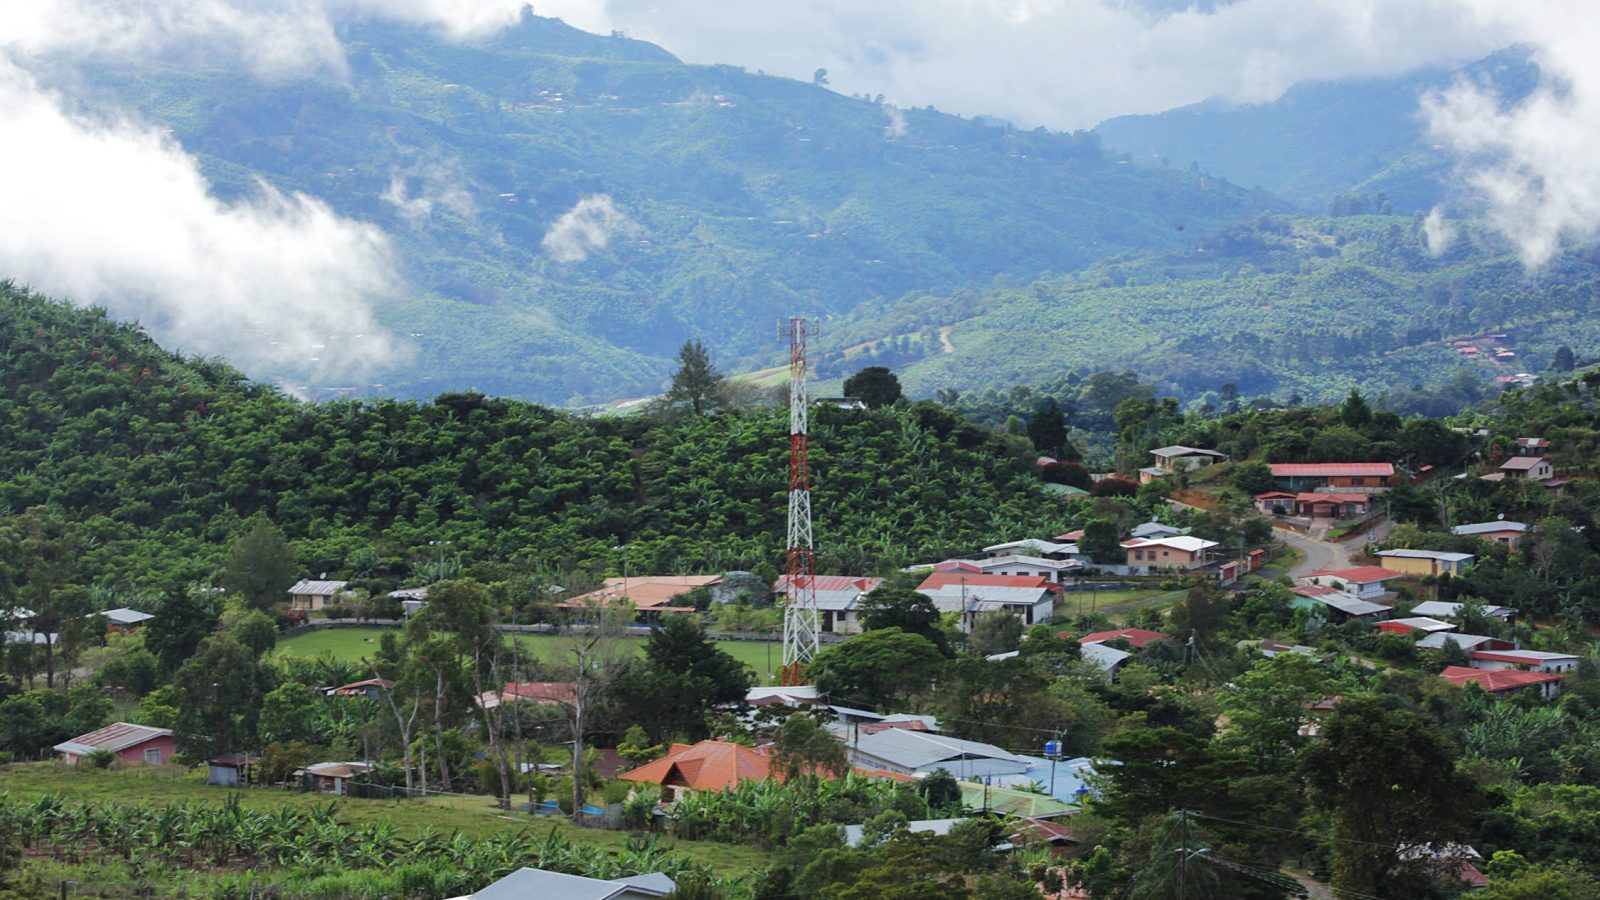 Lush, rural town in mountains of Latin America